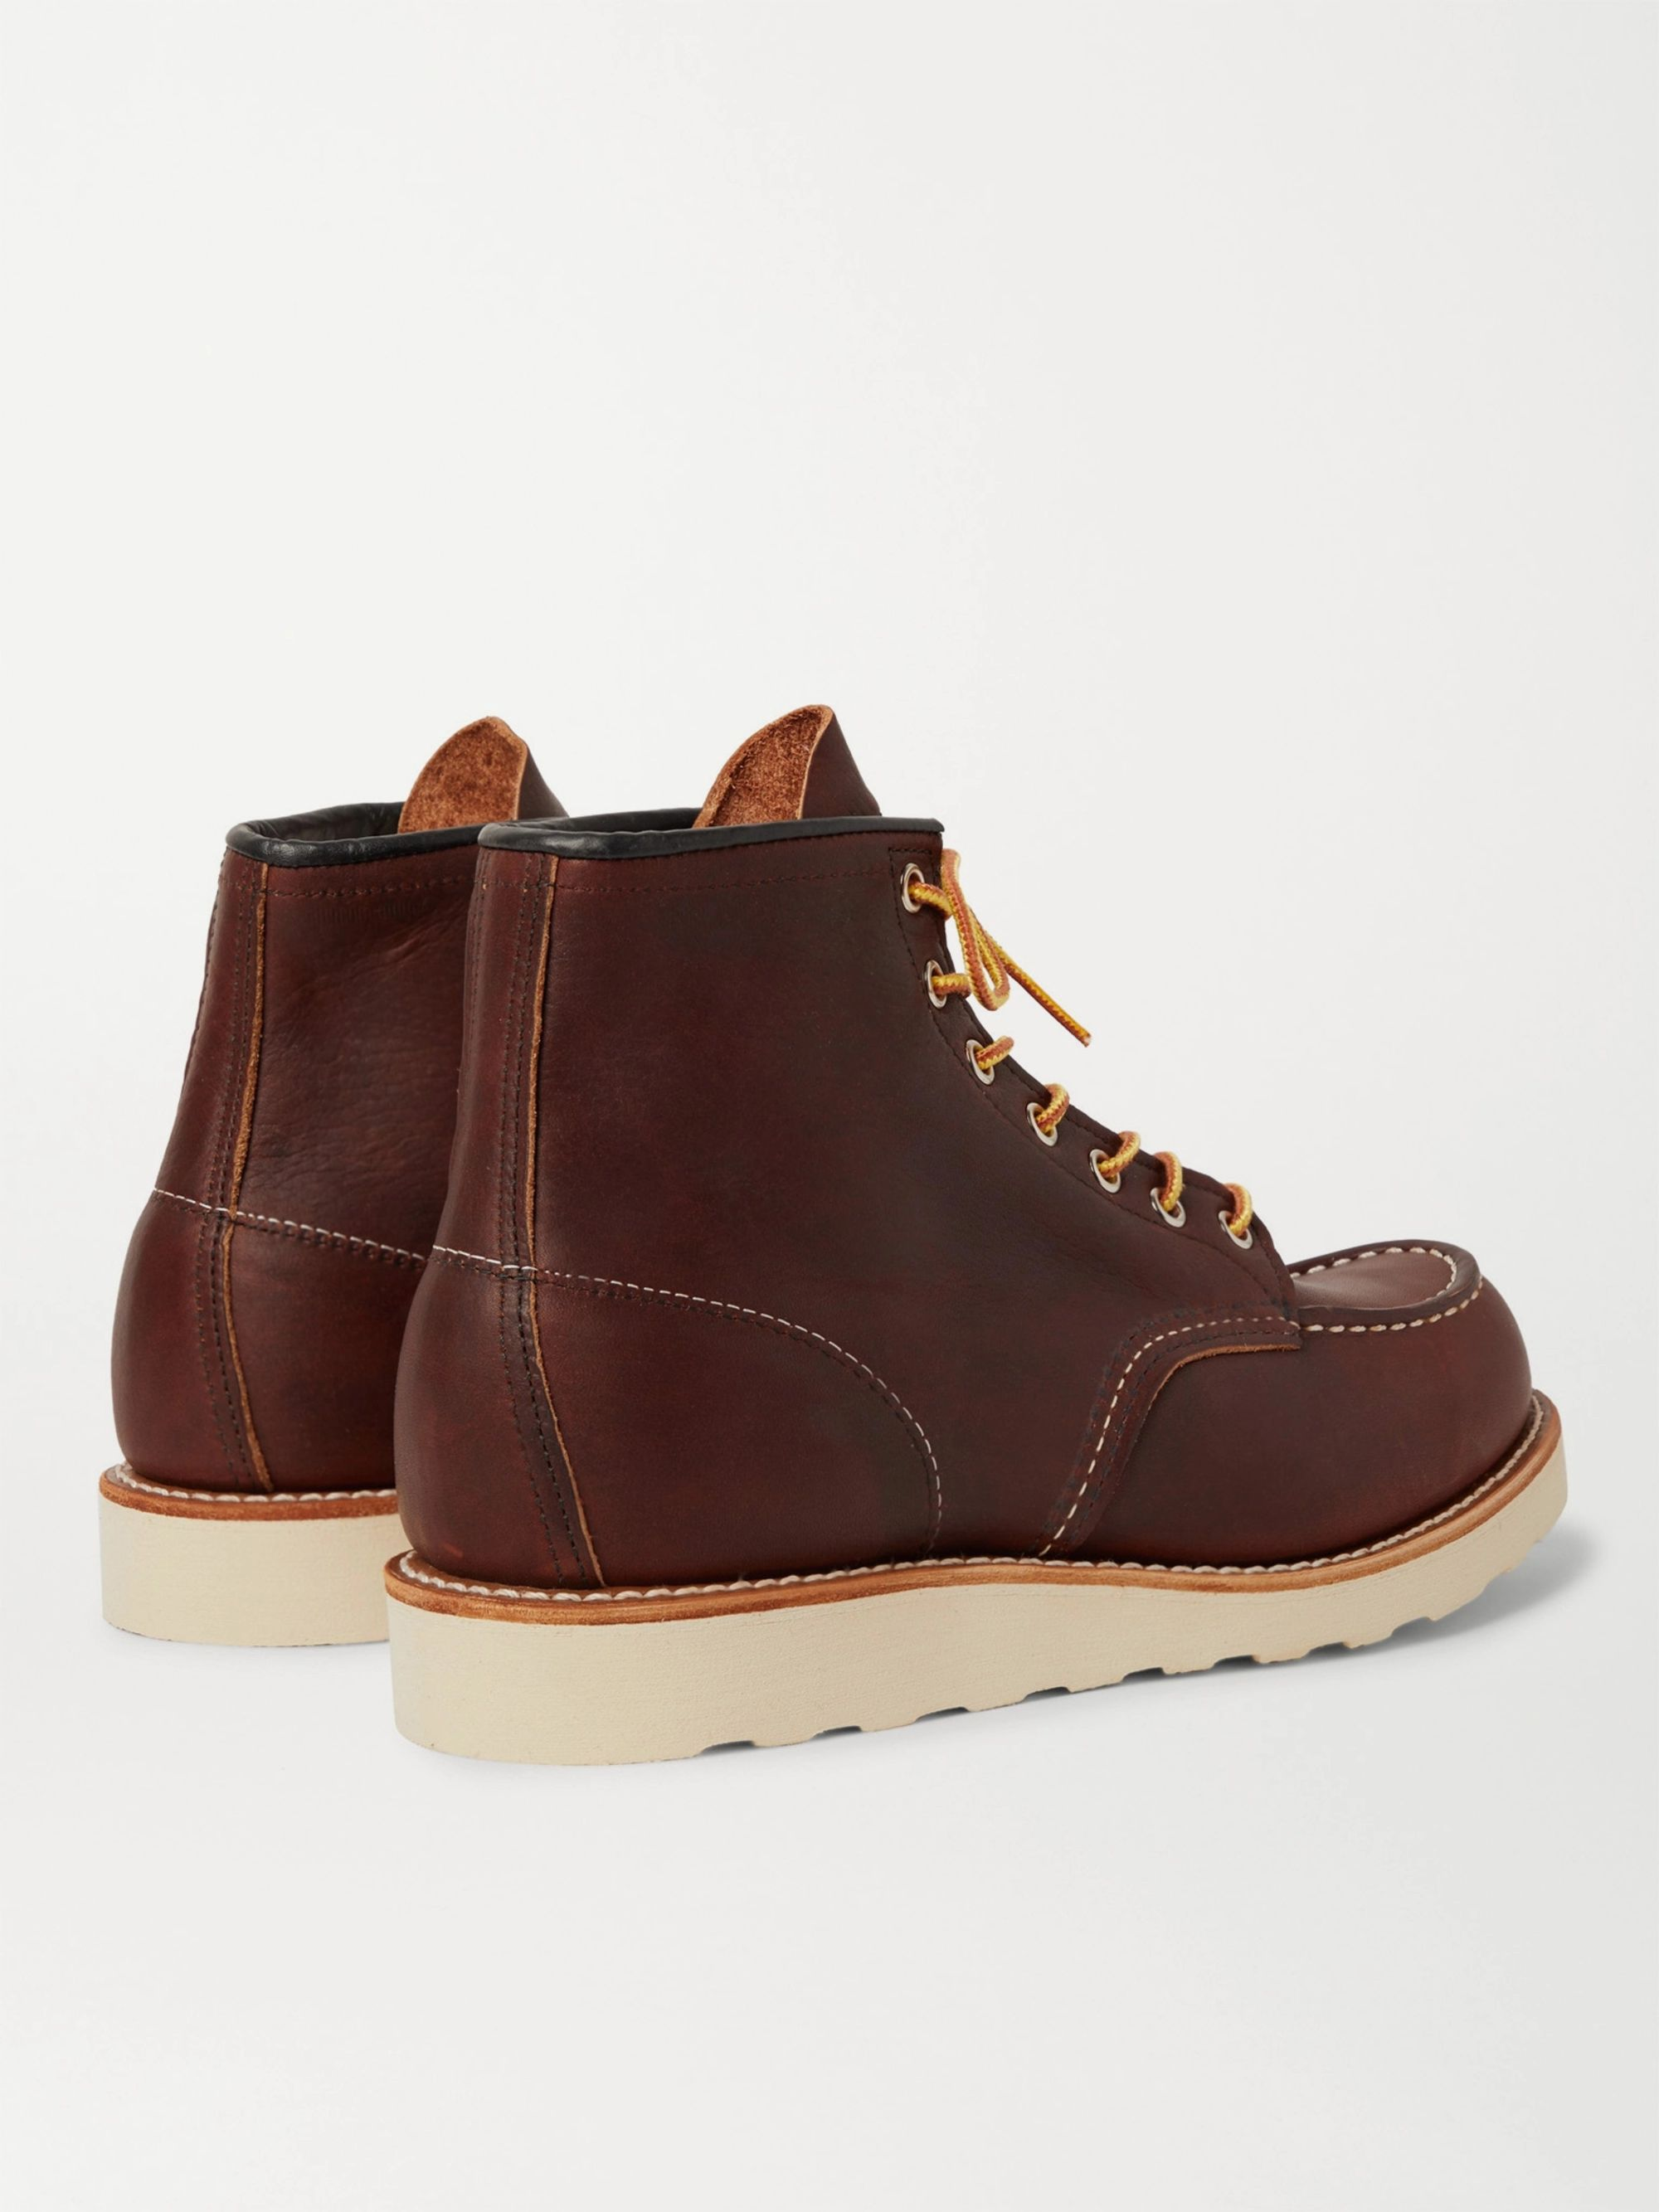 Red Wing Shoes 8138 Moc Leather Boots